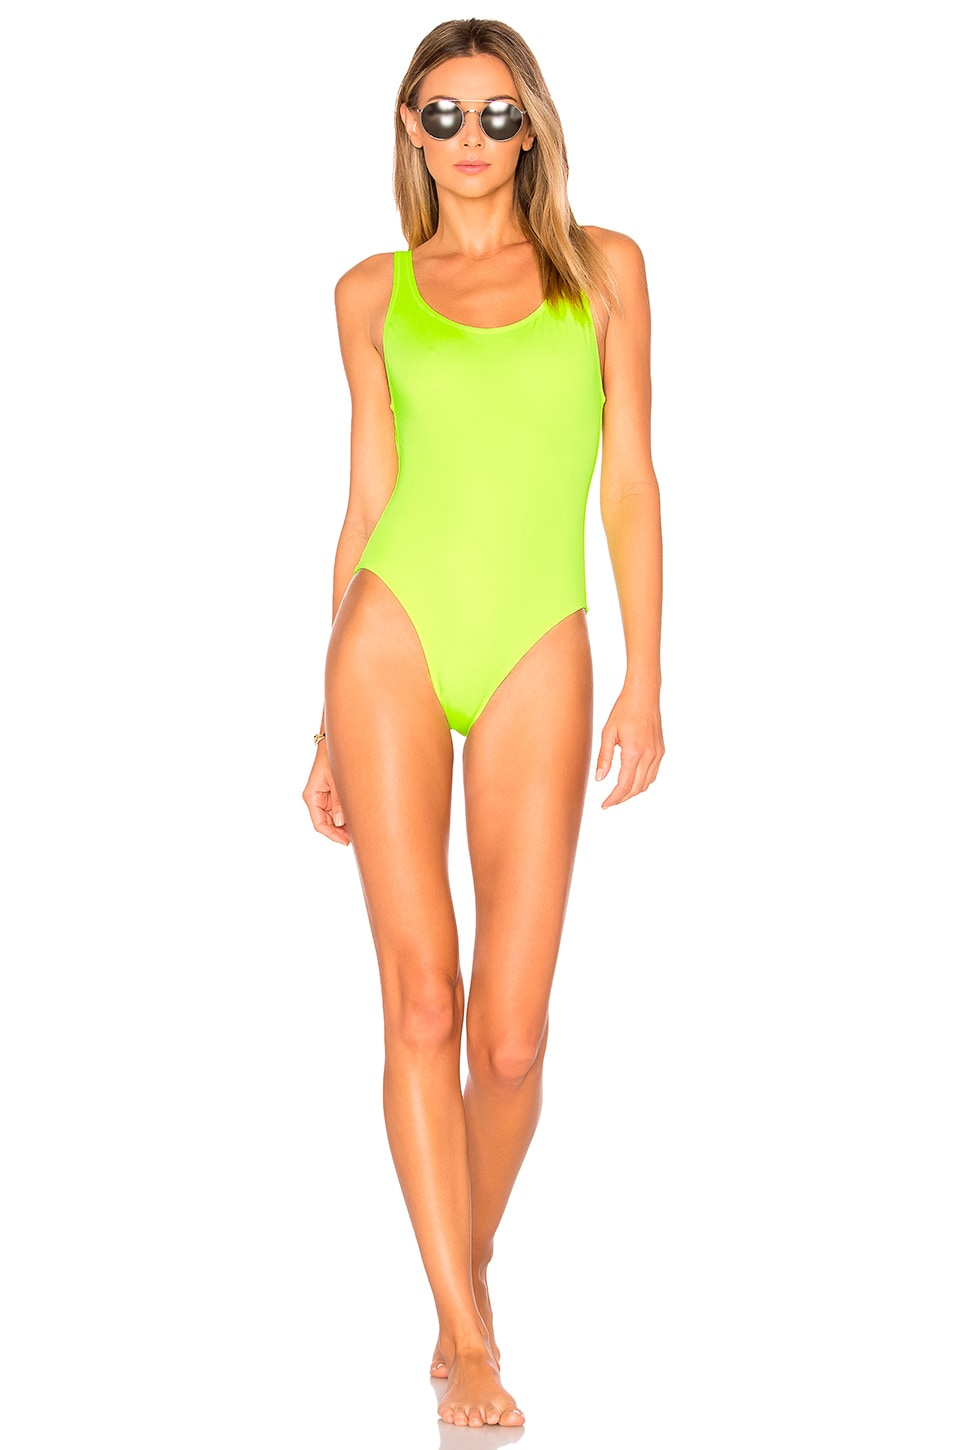 Solid & Striped The Anne Marie One Piece in Pop Yellow